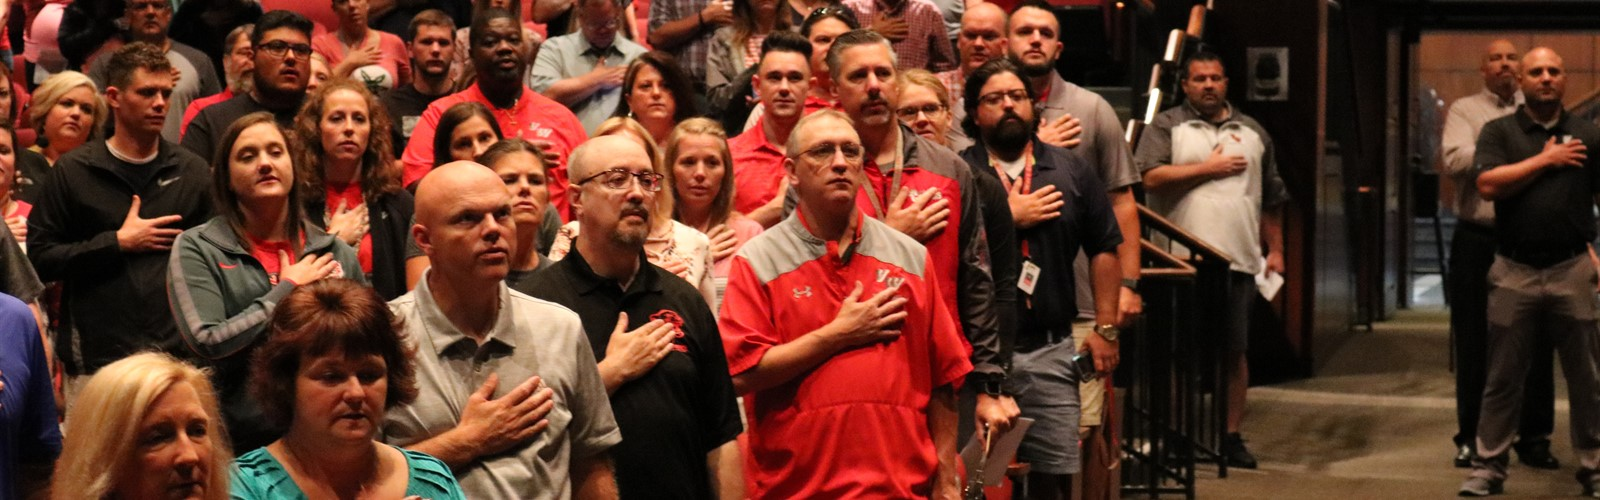 Staff say the Pledge of Allegiance during opening day meetings